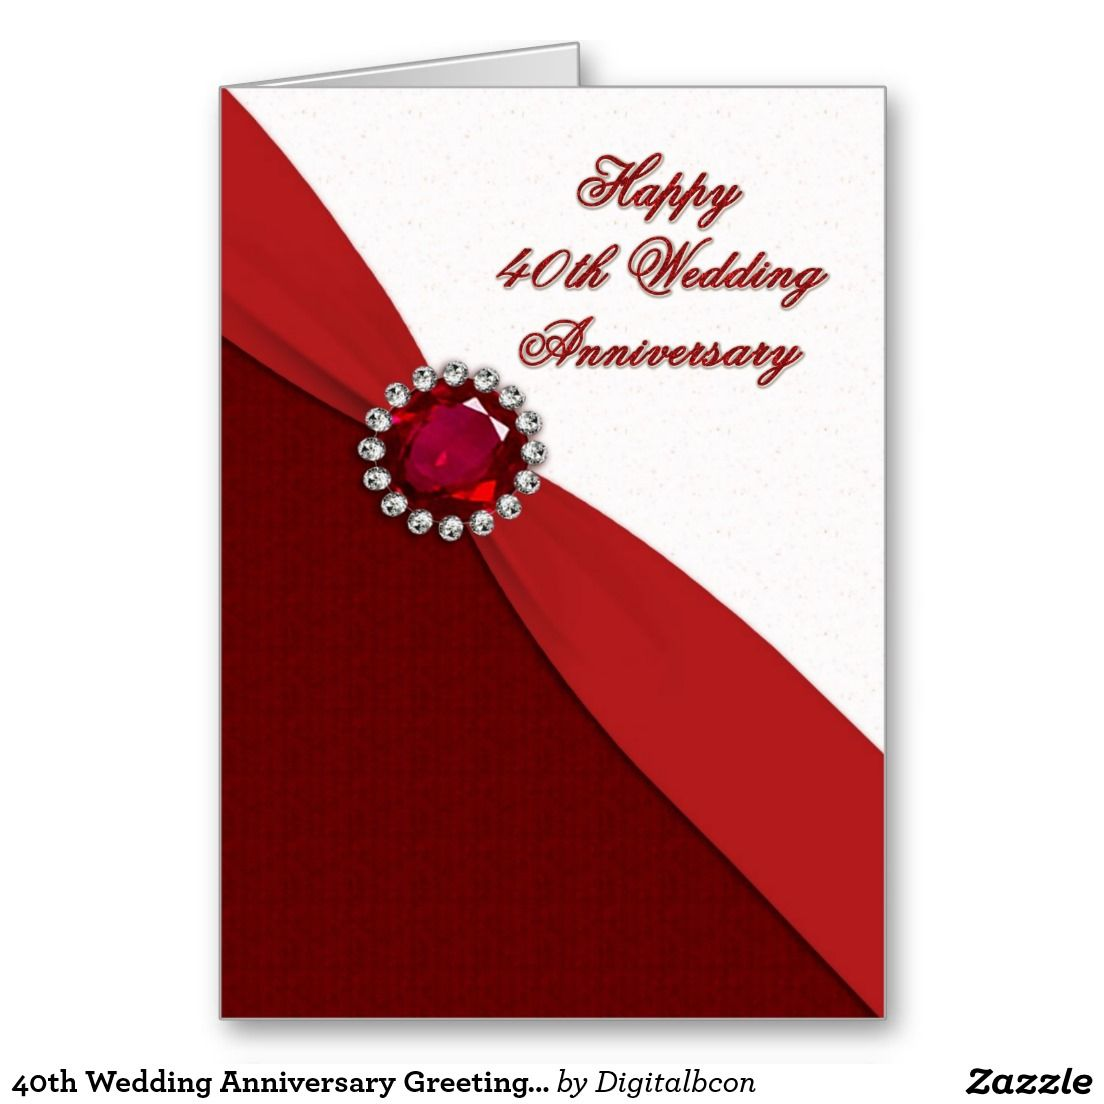 40th Wedding Anniversary Greeting Card | Pinterest | Wedding ...